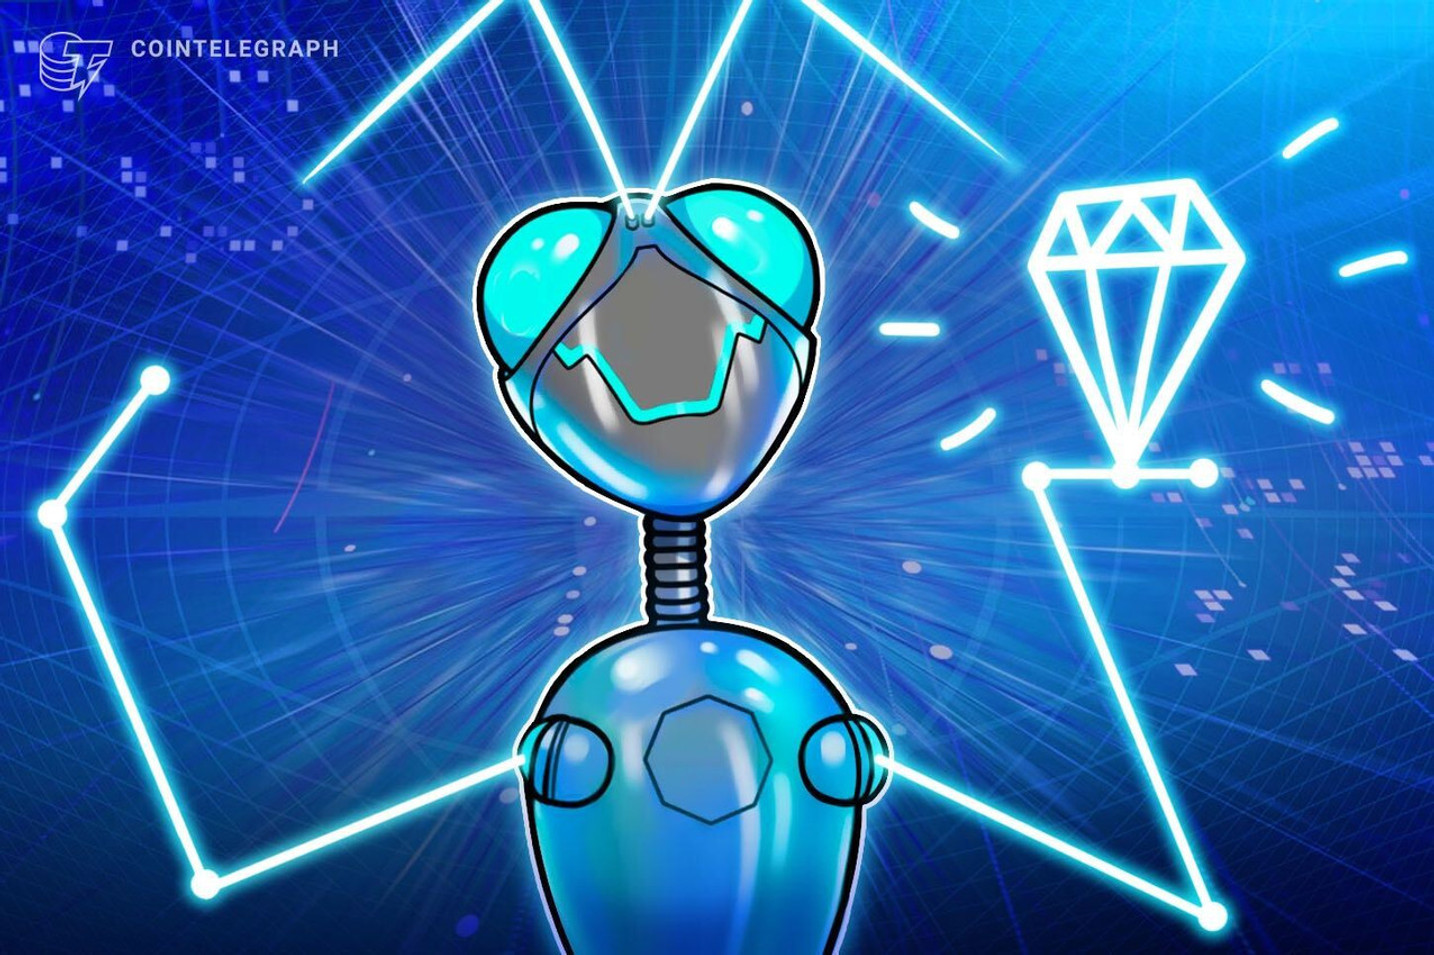 Free TON achieves mainnet status after reaching 'sufficient decentralization'